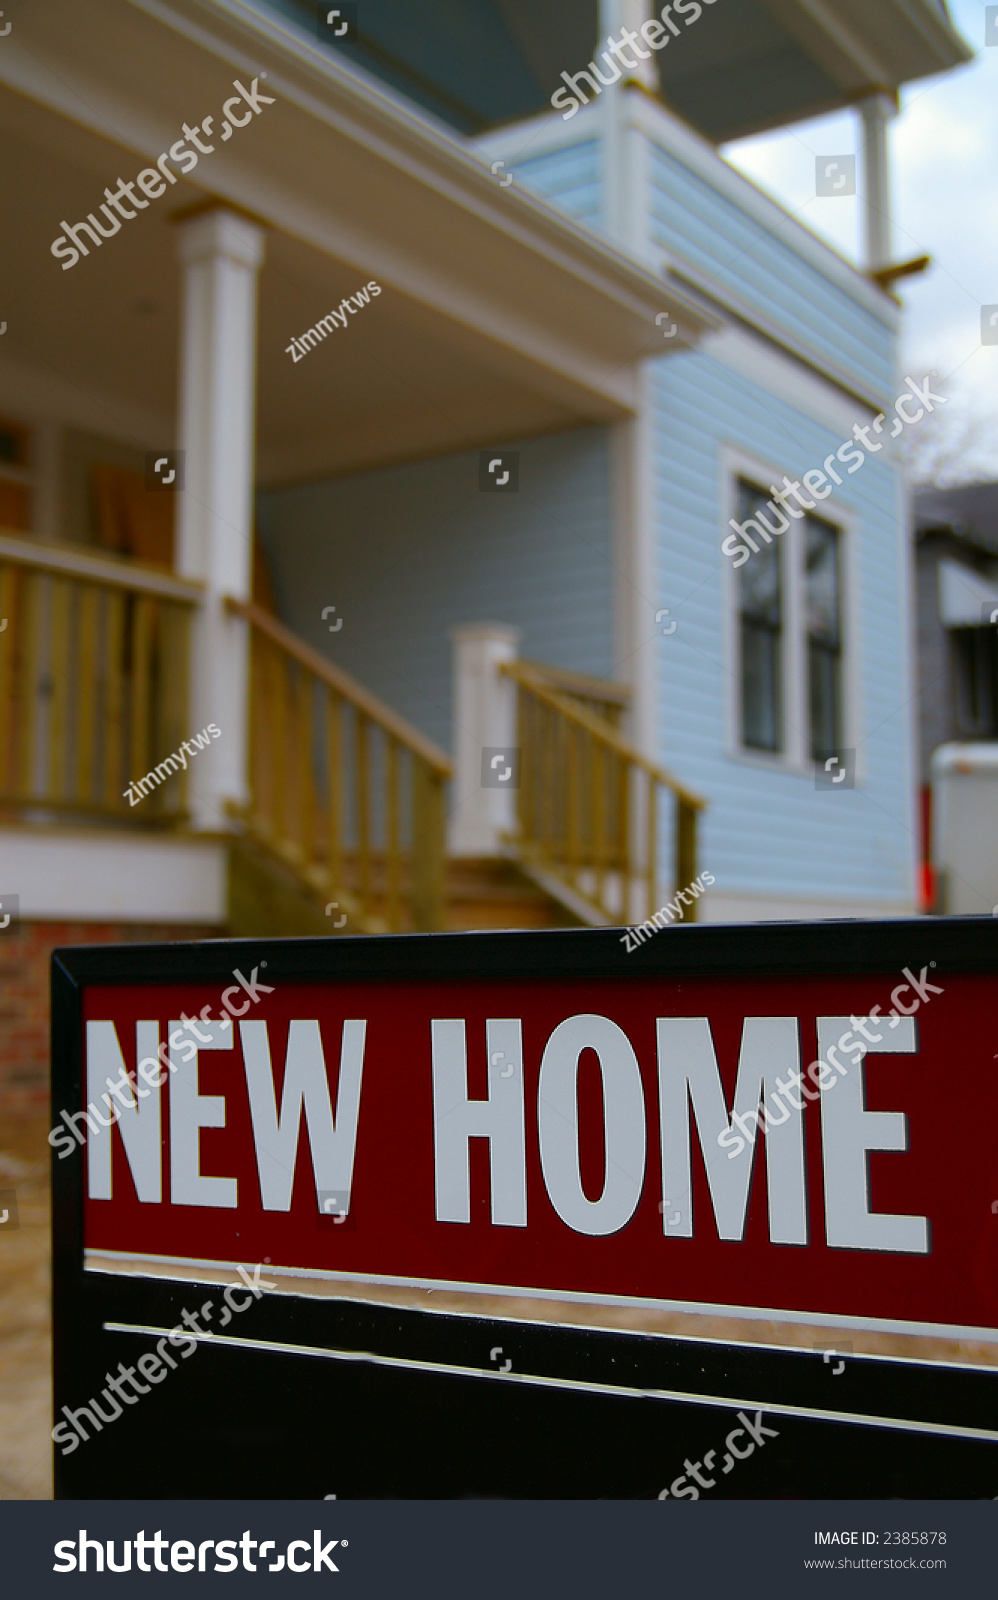 House with closeup of new home sign stock photo 2385878 for New home sign